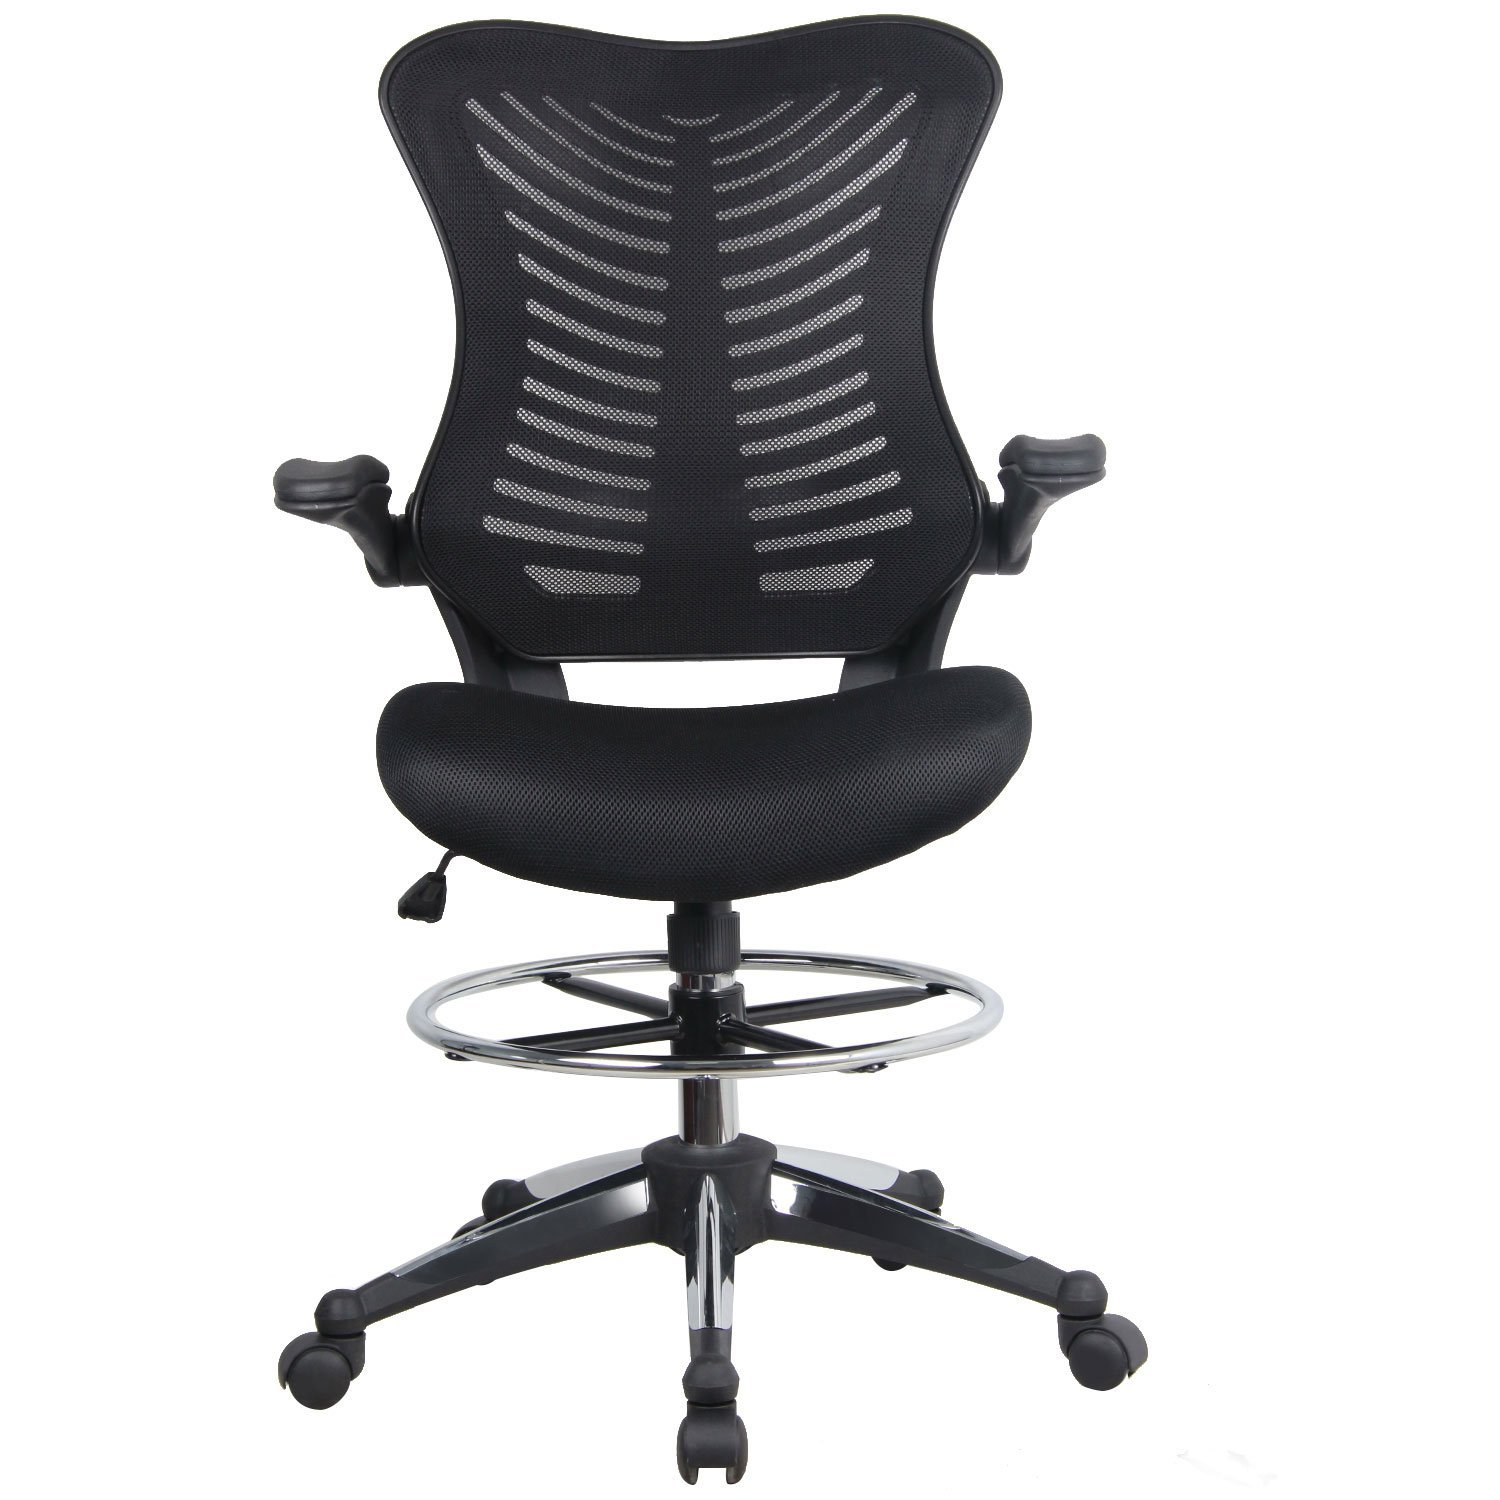 Homdox Ergonomic Office Chair, Adjustable Drafting Chair Breathable Mesh Fabric Chair Flip-up Padded Armrest with Five Dual-Wheel Handle Mechanism Swivel Height Home Office Chair (Black) (Style 1)